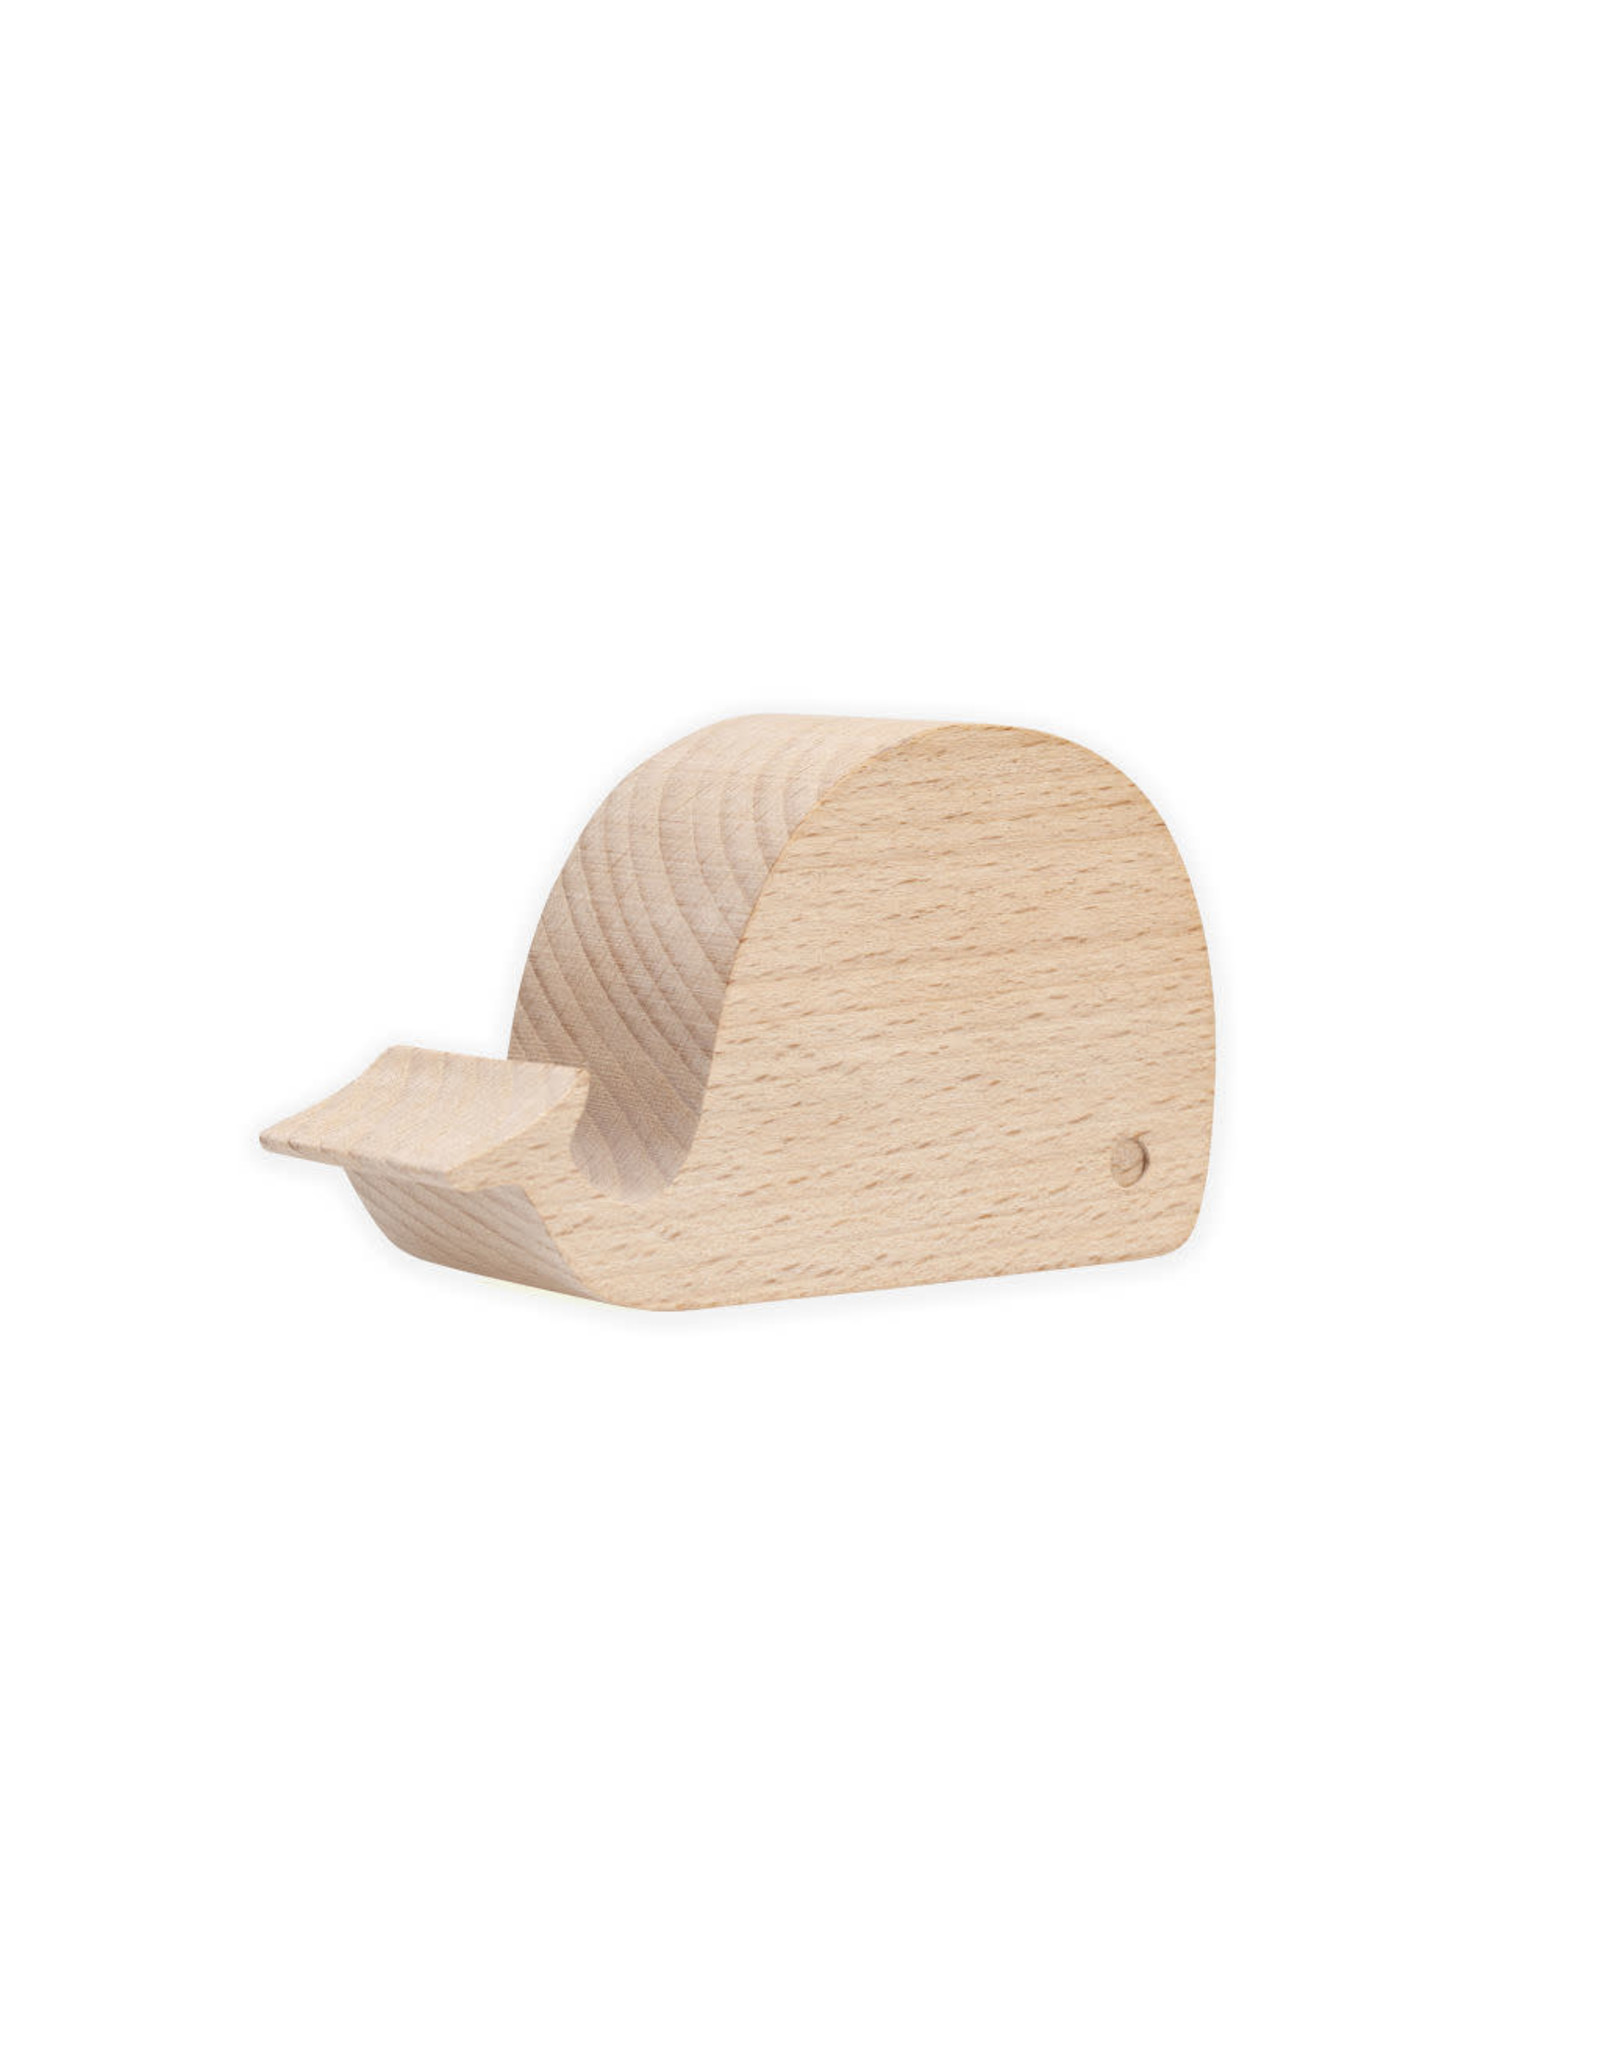 wooden mobile phone holder - whale